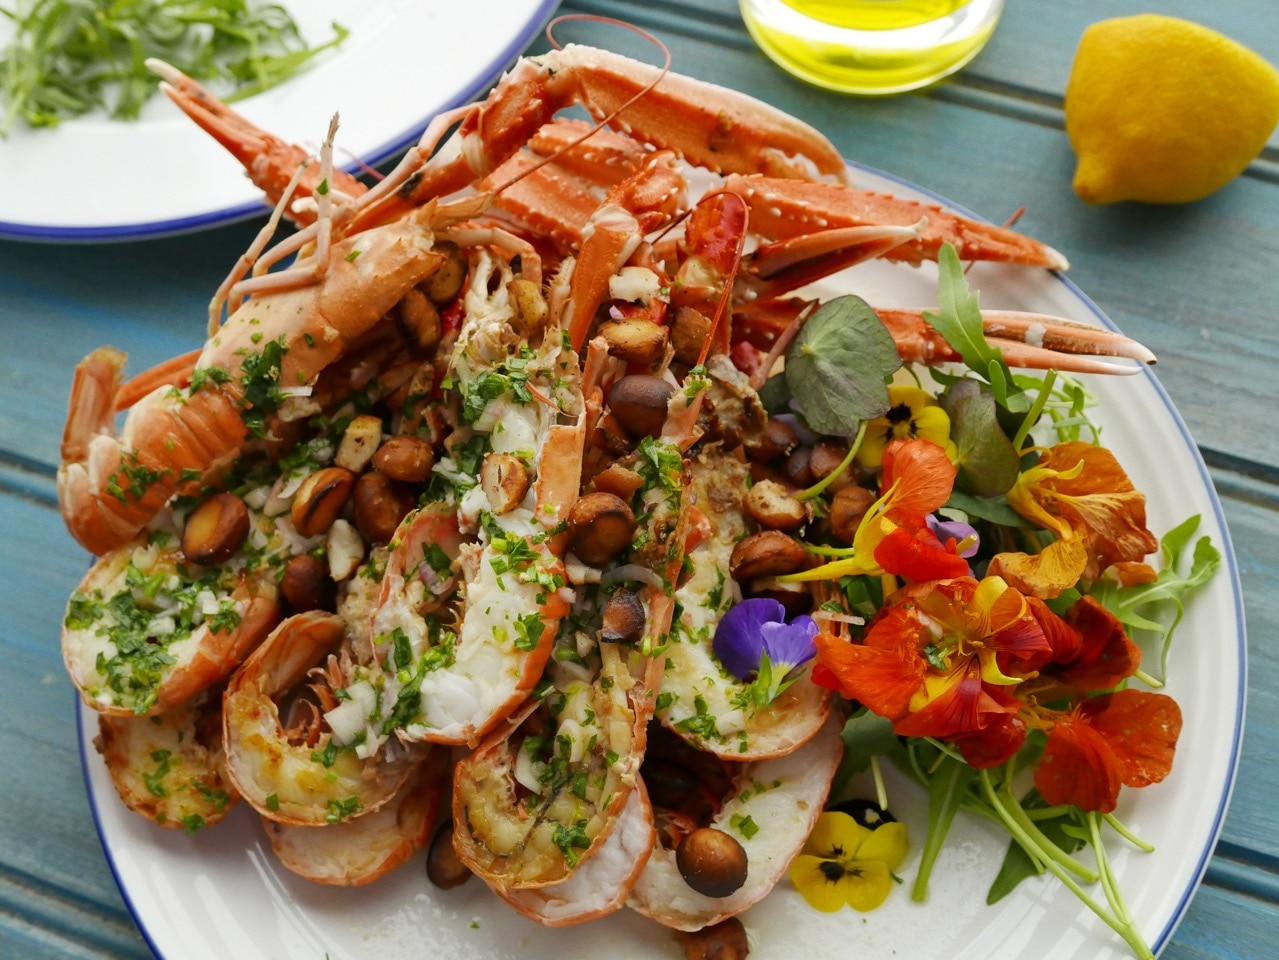 Grilled Langoustines with a Cornish Pastis & Olive Oil Dressing